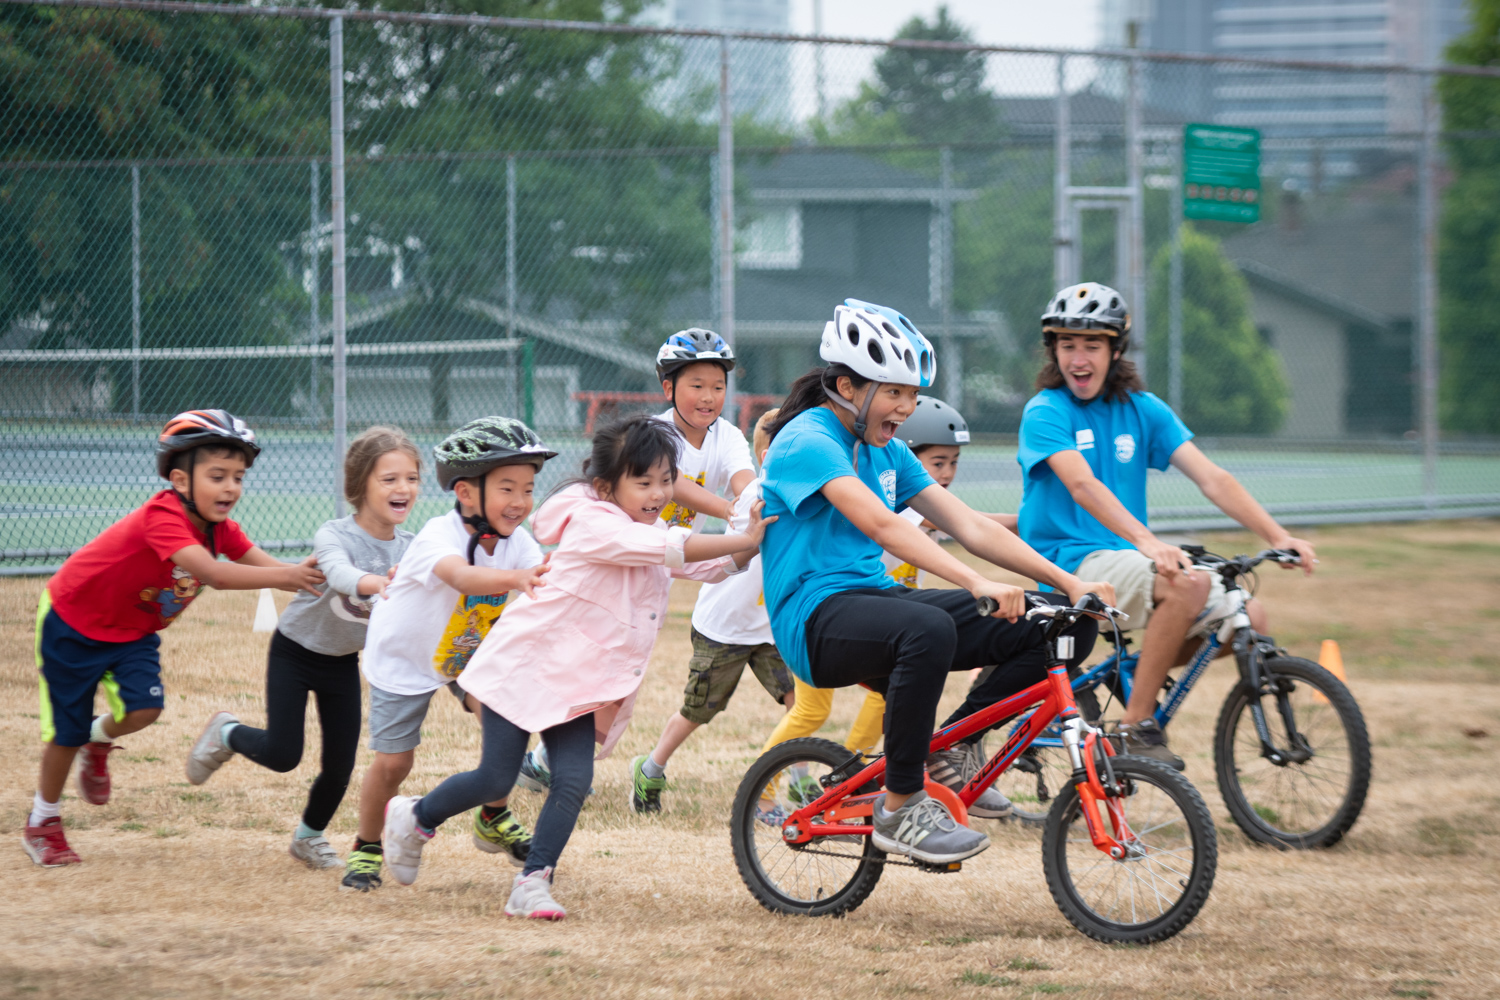 Children pushing Pedalheads instructors on bicycles, laughing as they race during this fun camp event.